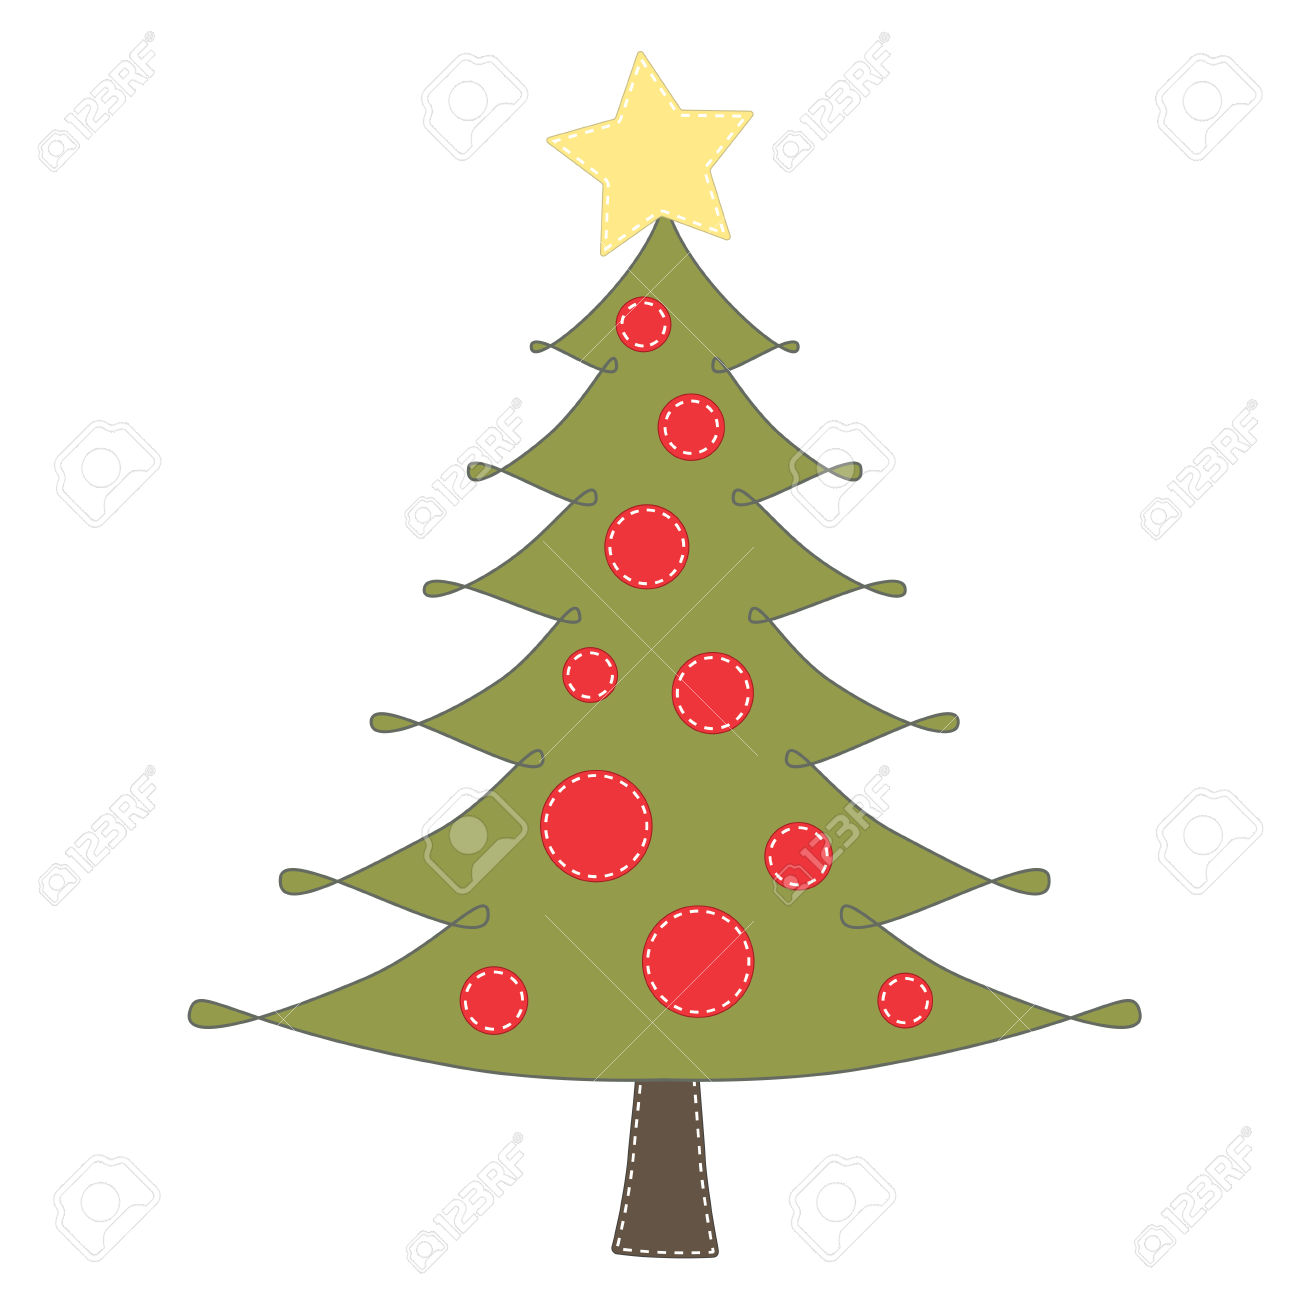 1300x1300 christmas tree clip art on transparent background for scrapbooking - Christmas Tree Transparent